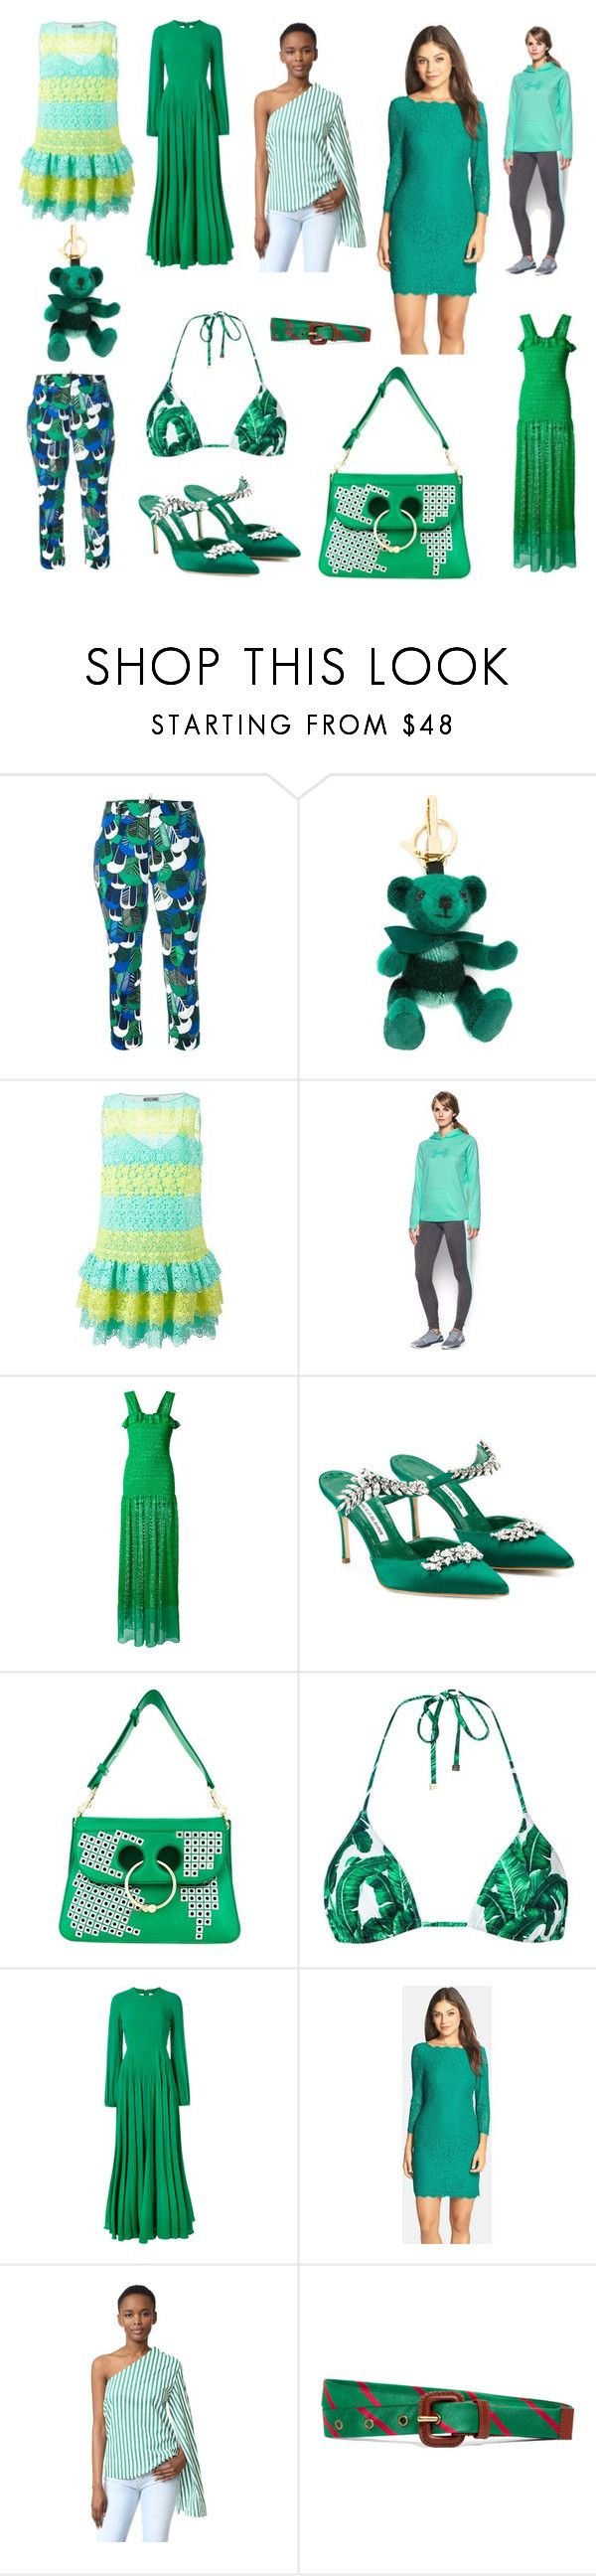 """Sunday Super Sale"" by donna-wang1 ❤ liked on Polyvore featuring Dsquared2, Burberry, Moschino, Under Armour, STELLA McCARTNEY, Manolo Blahnik, J.W. Anderson, Dolce&Gabbana, N°21 and Adrianna Papell"